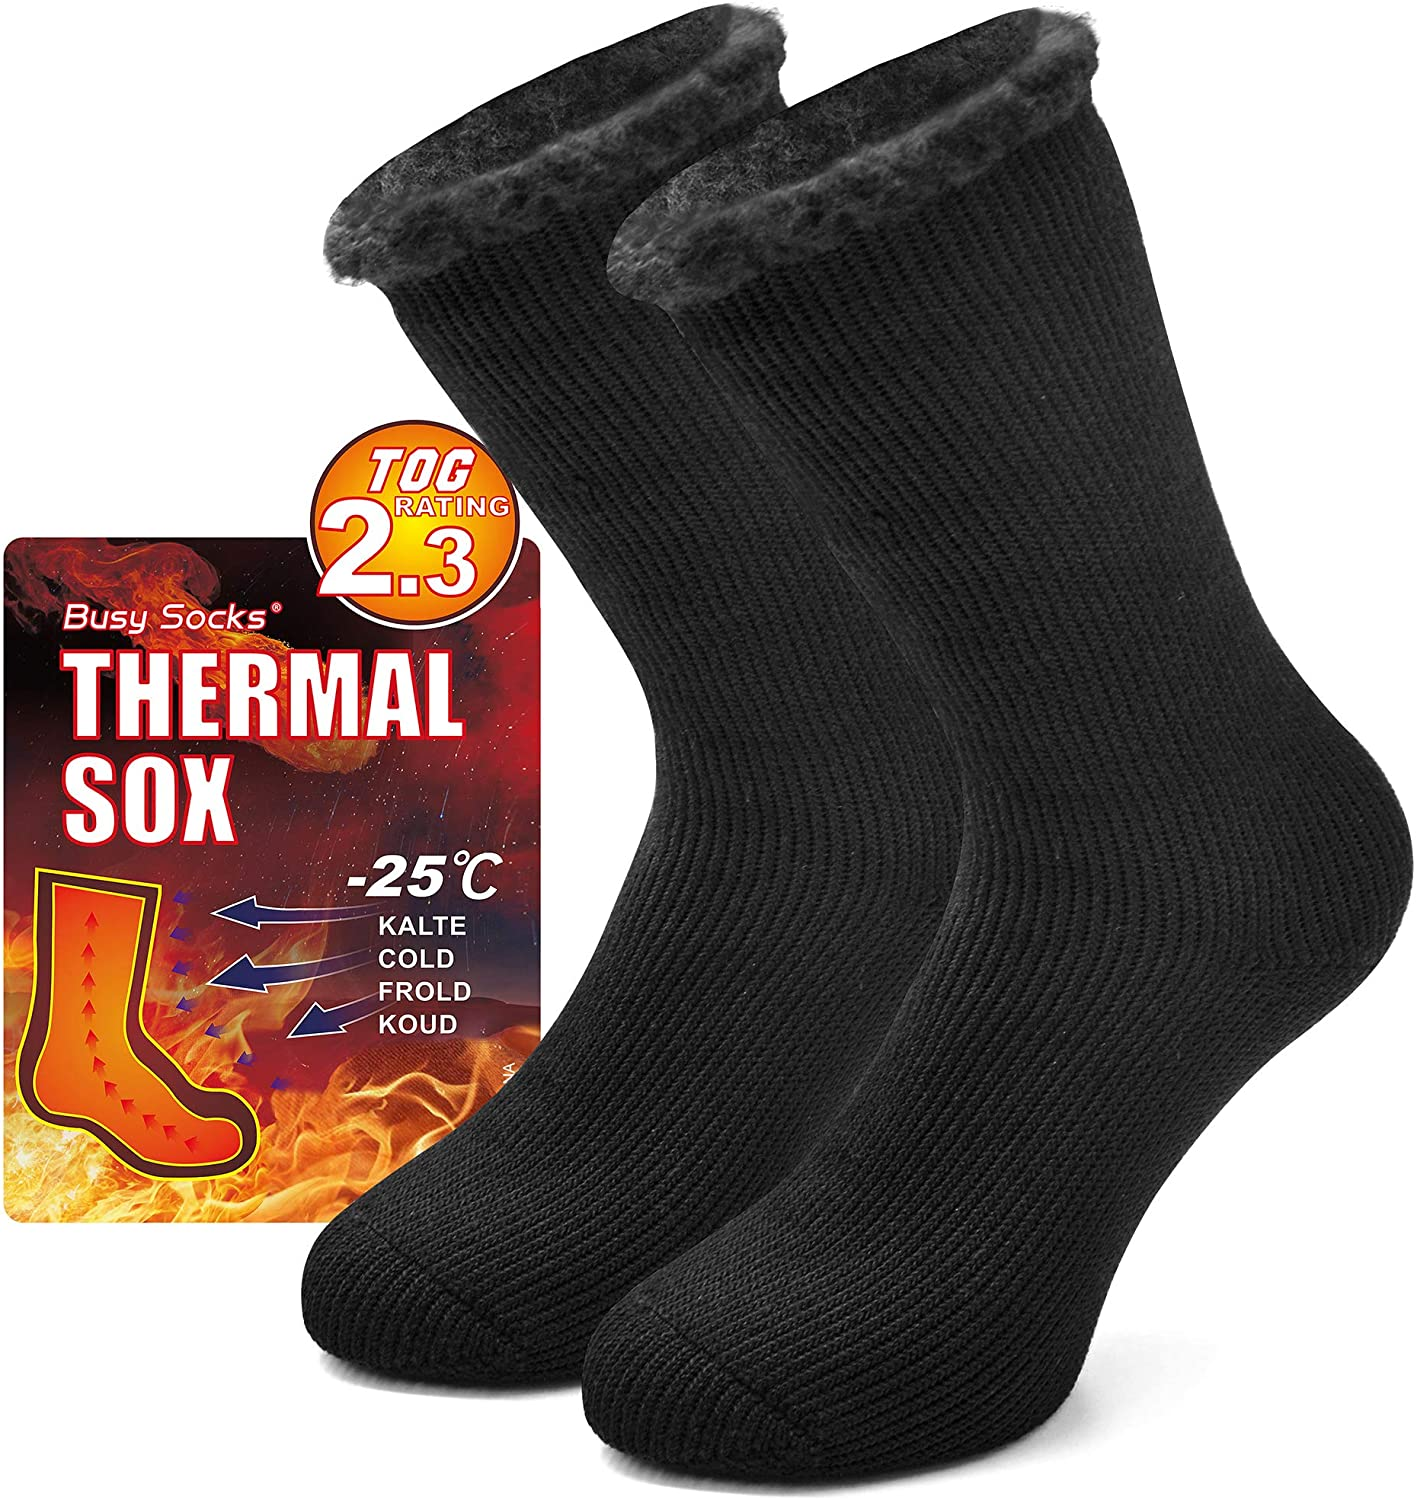 Winter Warm Thermal Socks for Busy Thick Women Men Bargain sale Sale price Extra